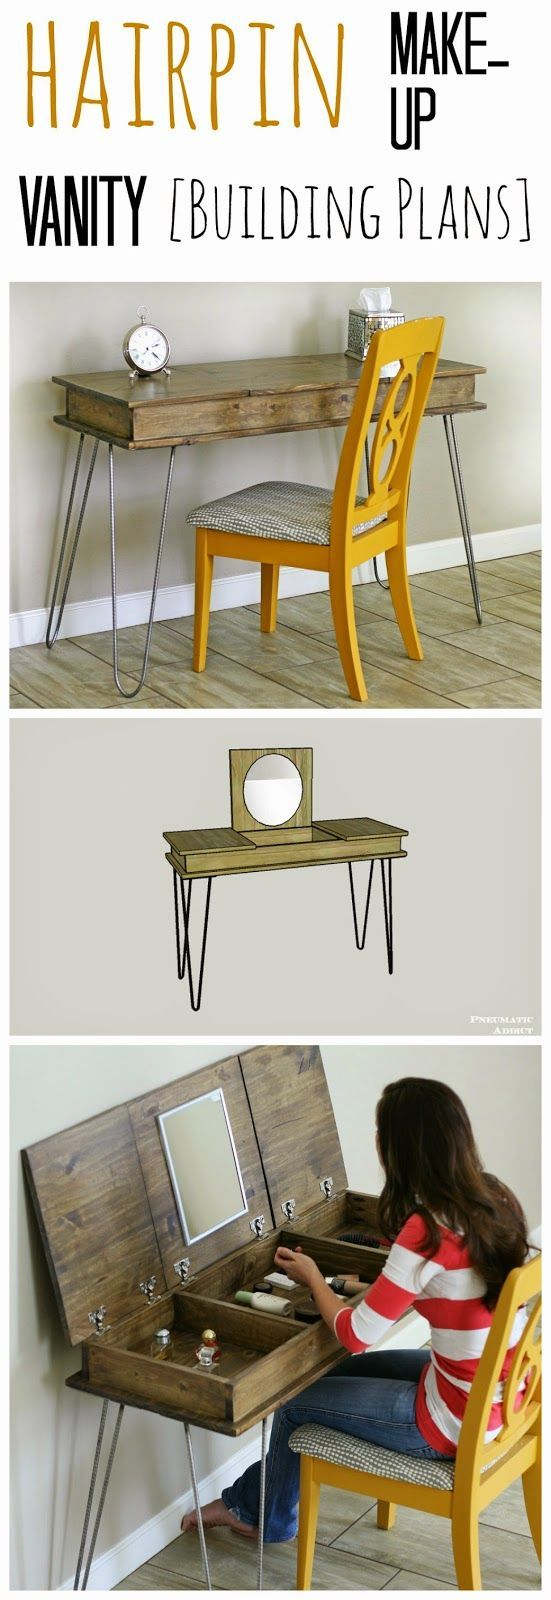 I love this! Free building plans to make my own  DIY hairpin leg, make-up vanity.